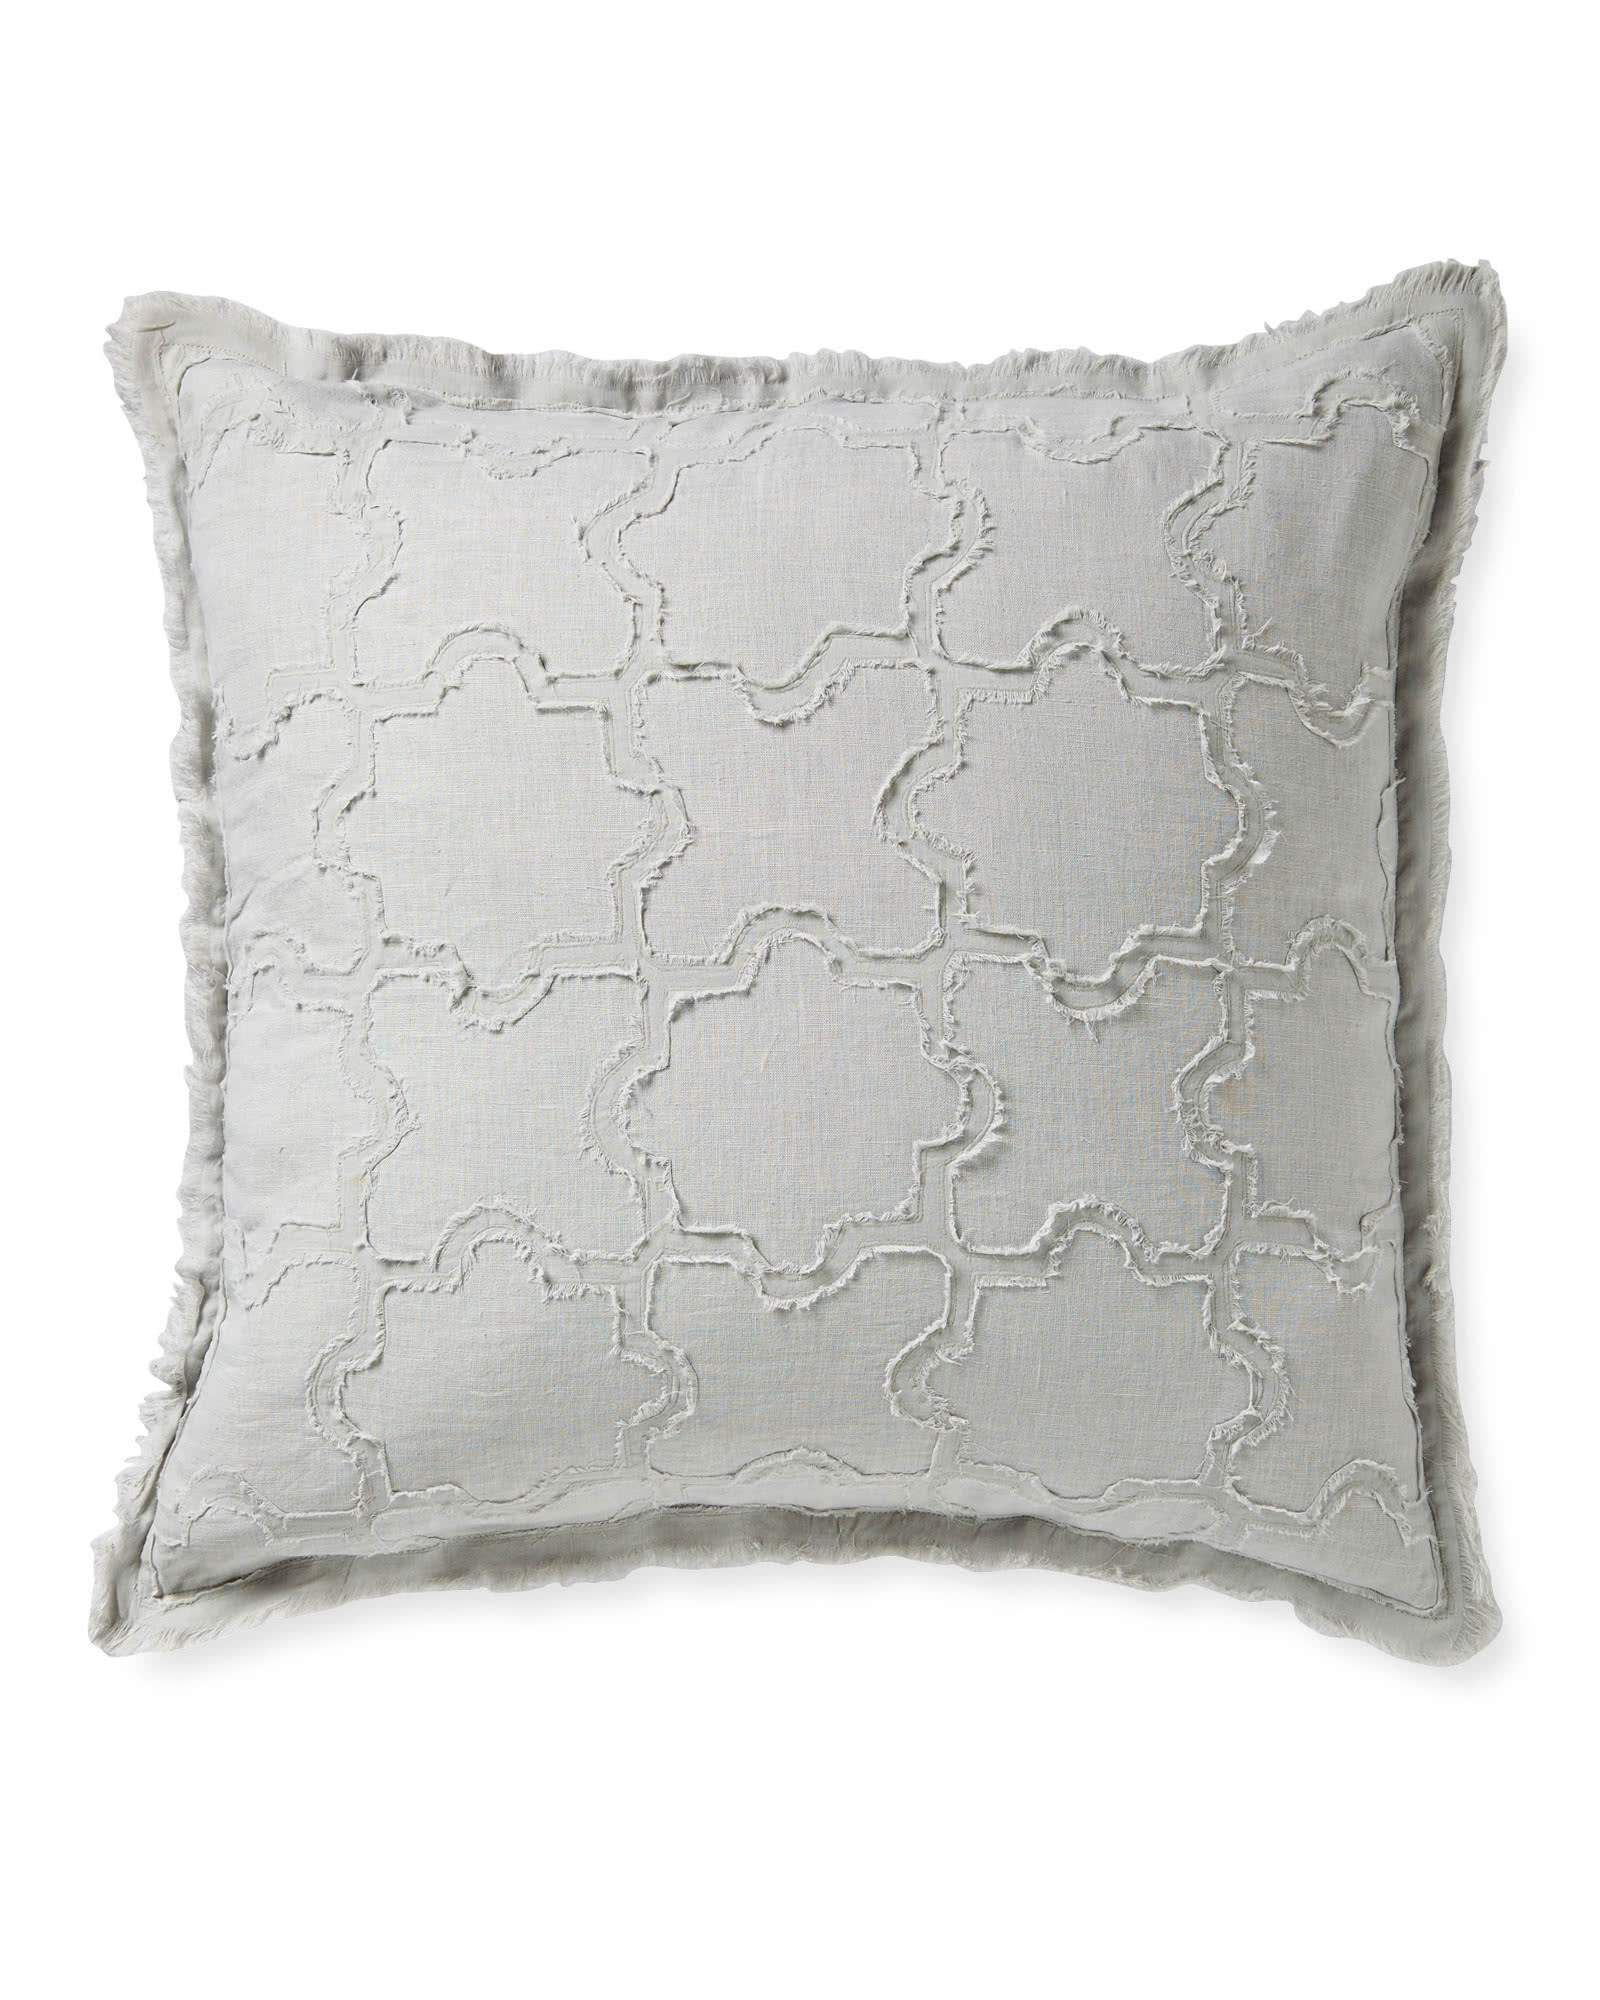 Barcelona Pillow Cover